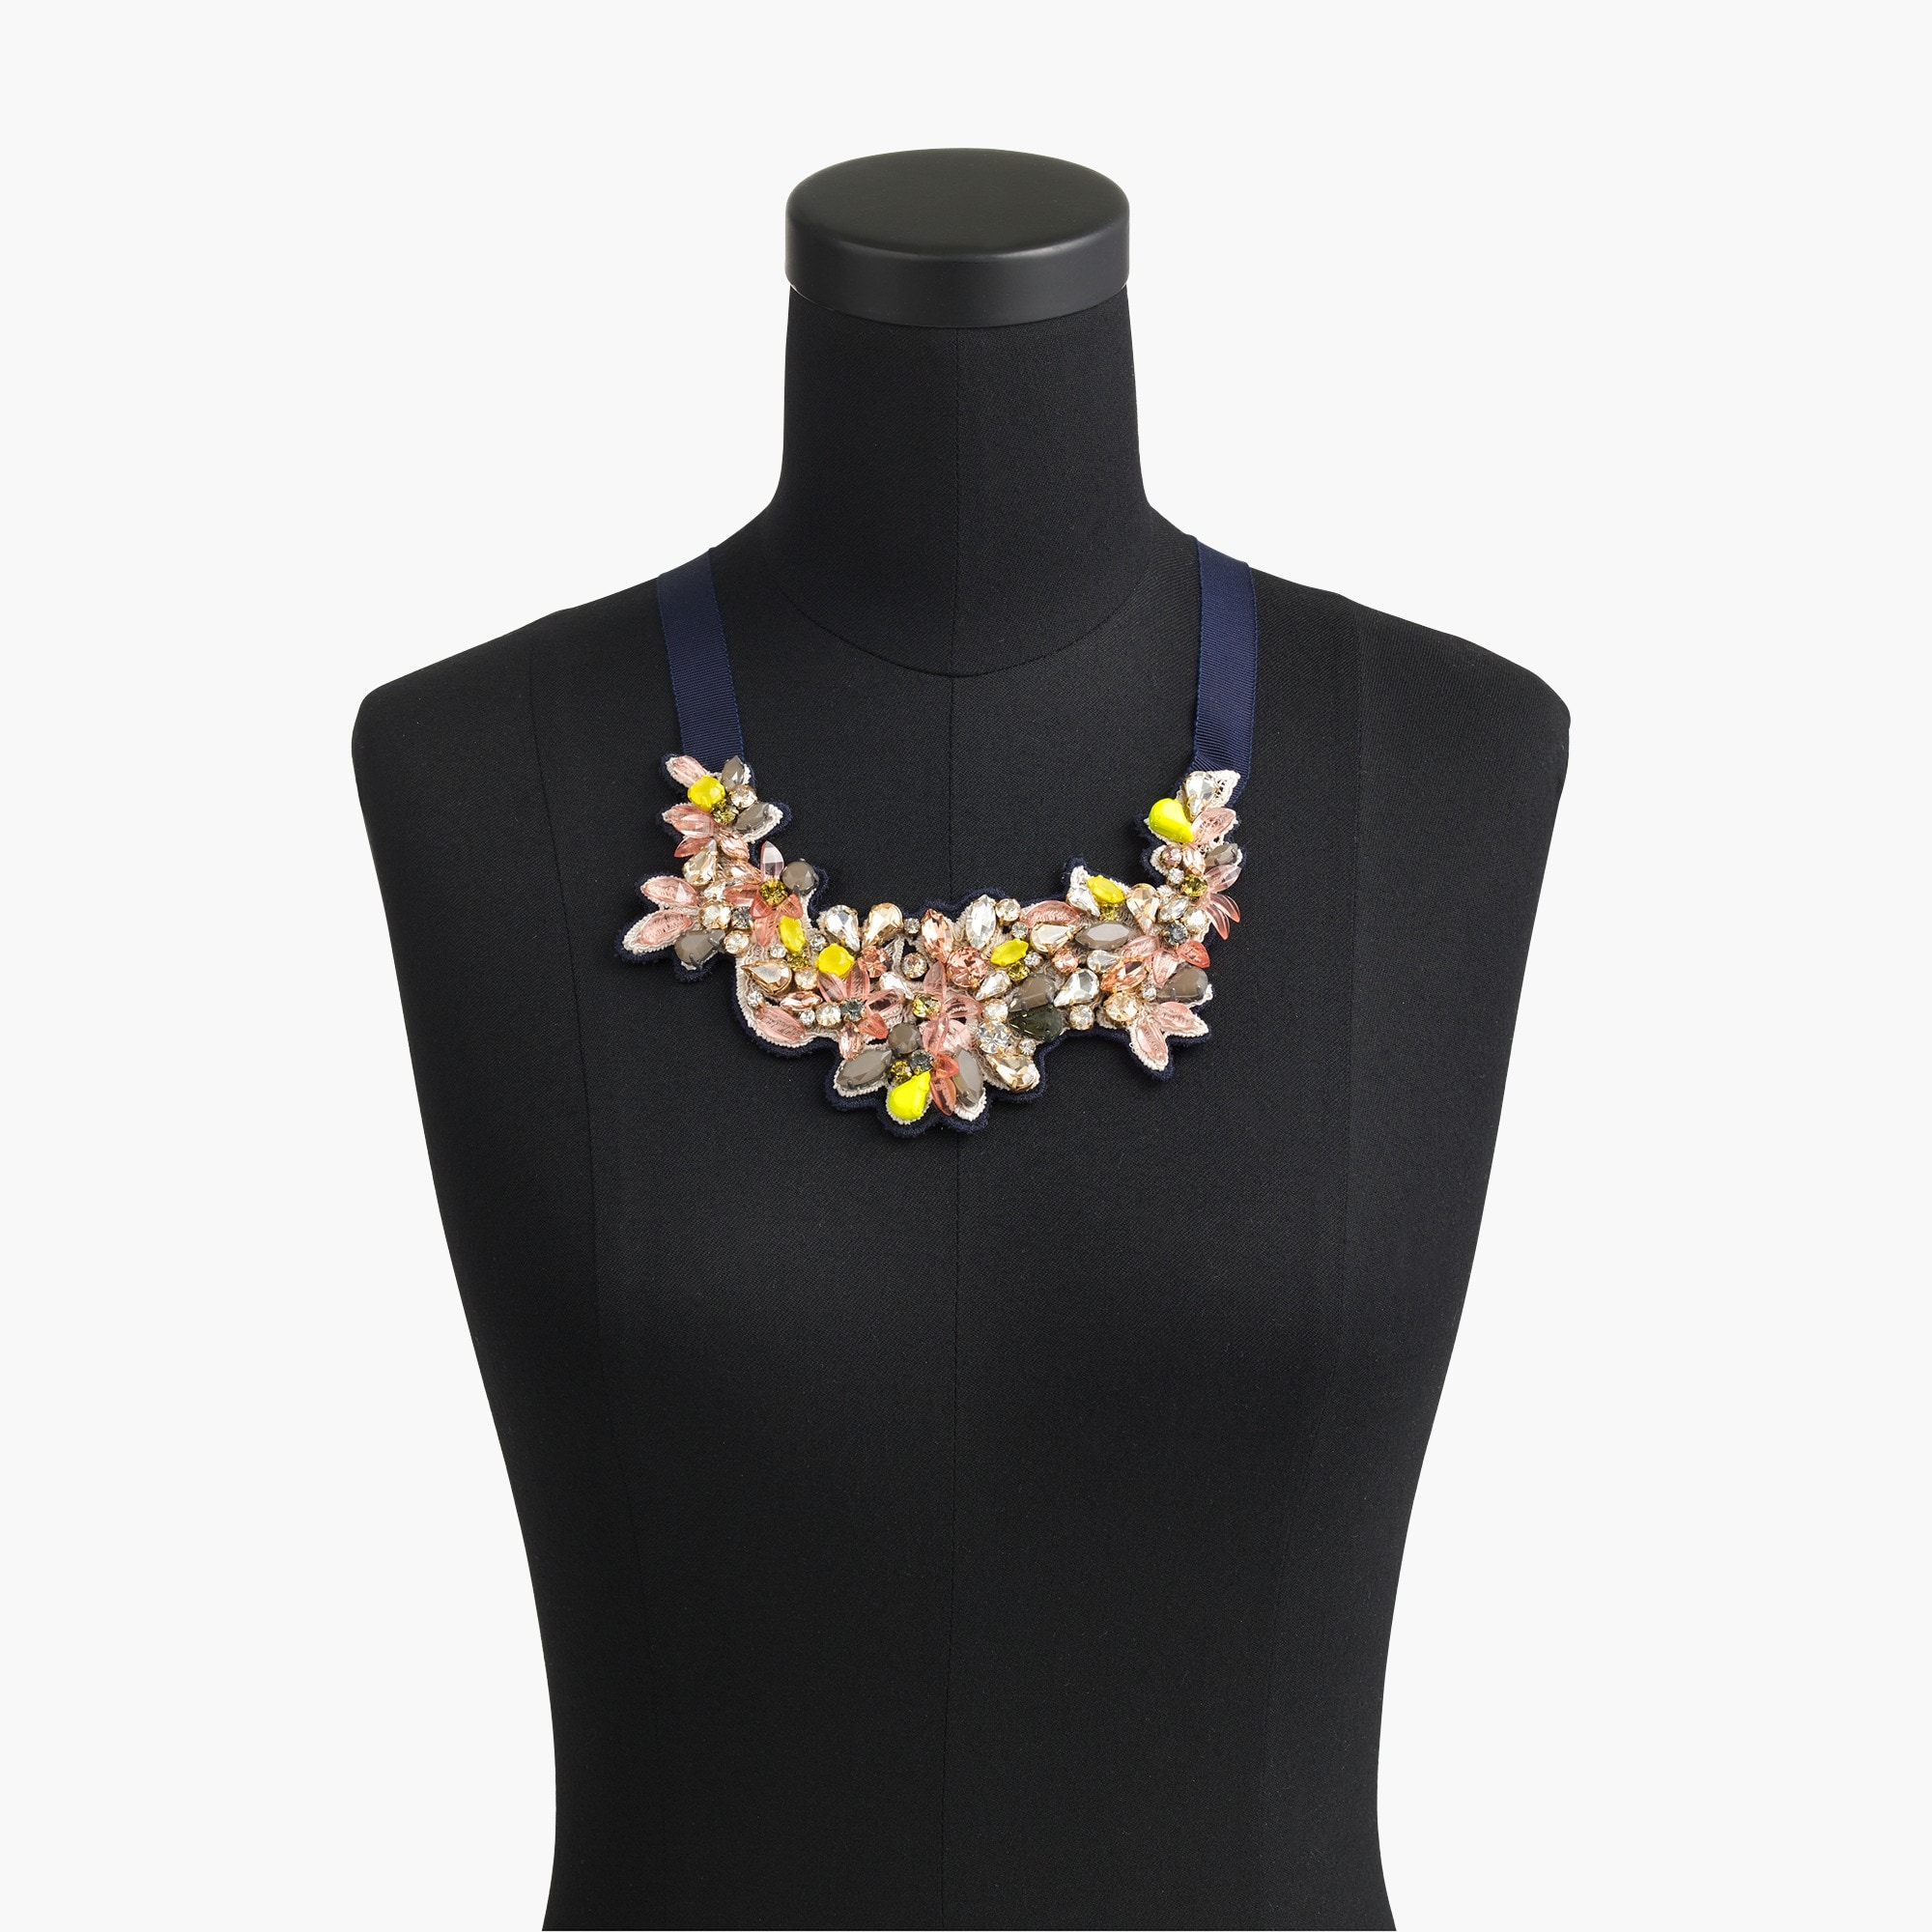 Botanical embroidered crystal bib necklace